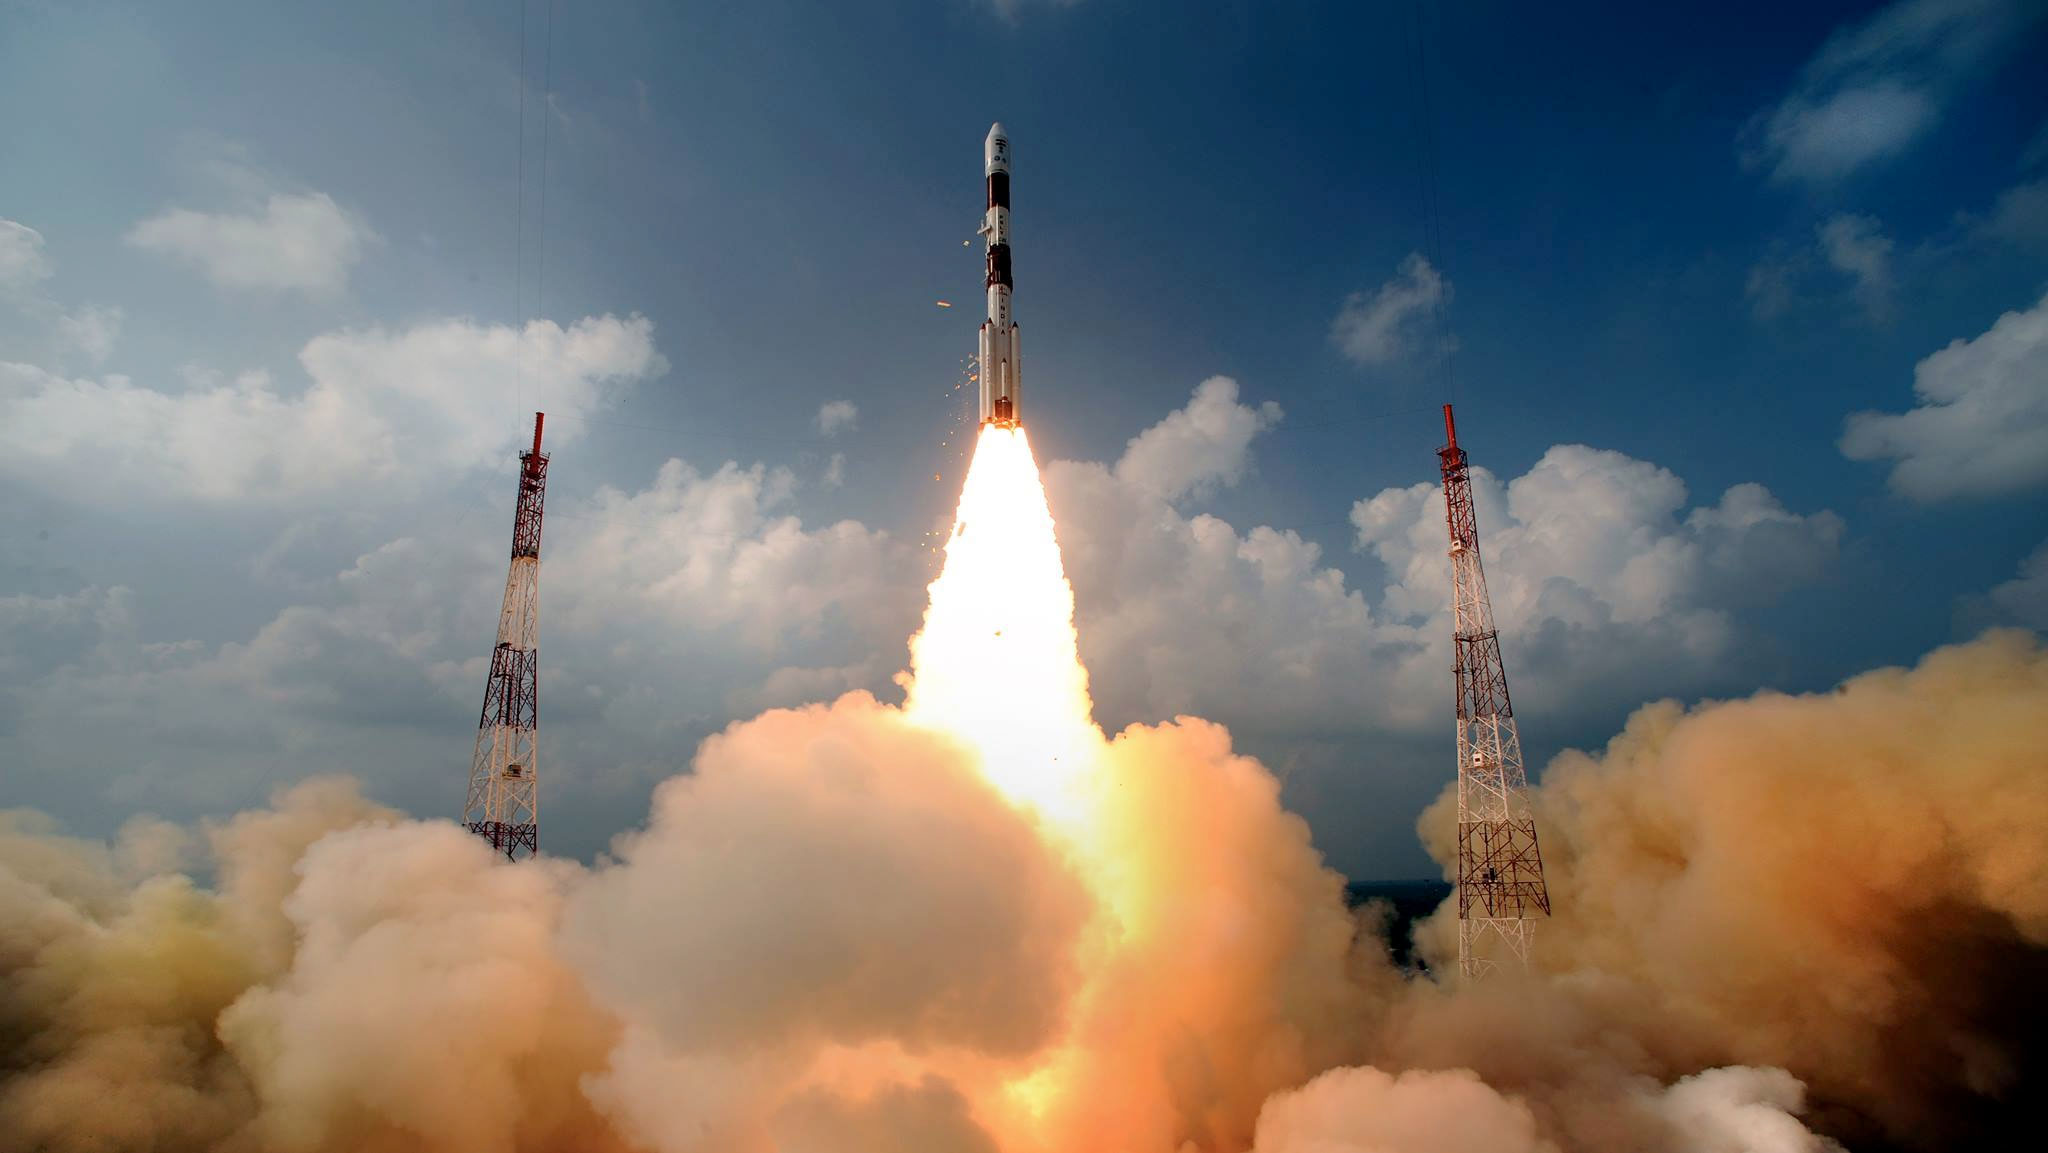 It seems that 2017 is going to be a hectic but lucky year for the space agency. Team ISRO that had launched PSLV-C36 into space last month is braced up for future projects.